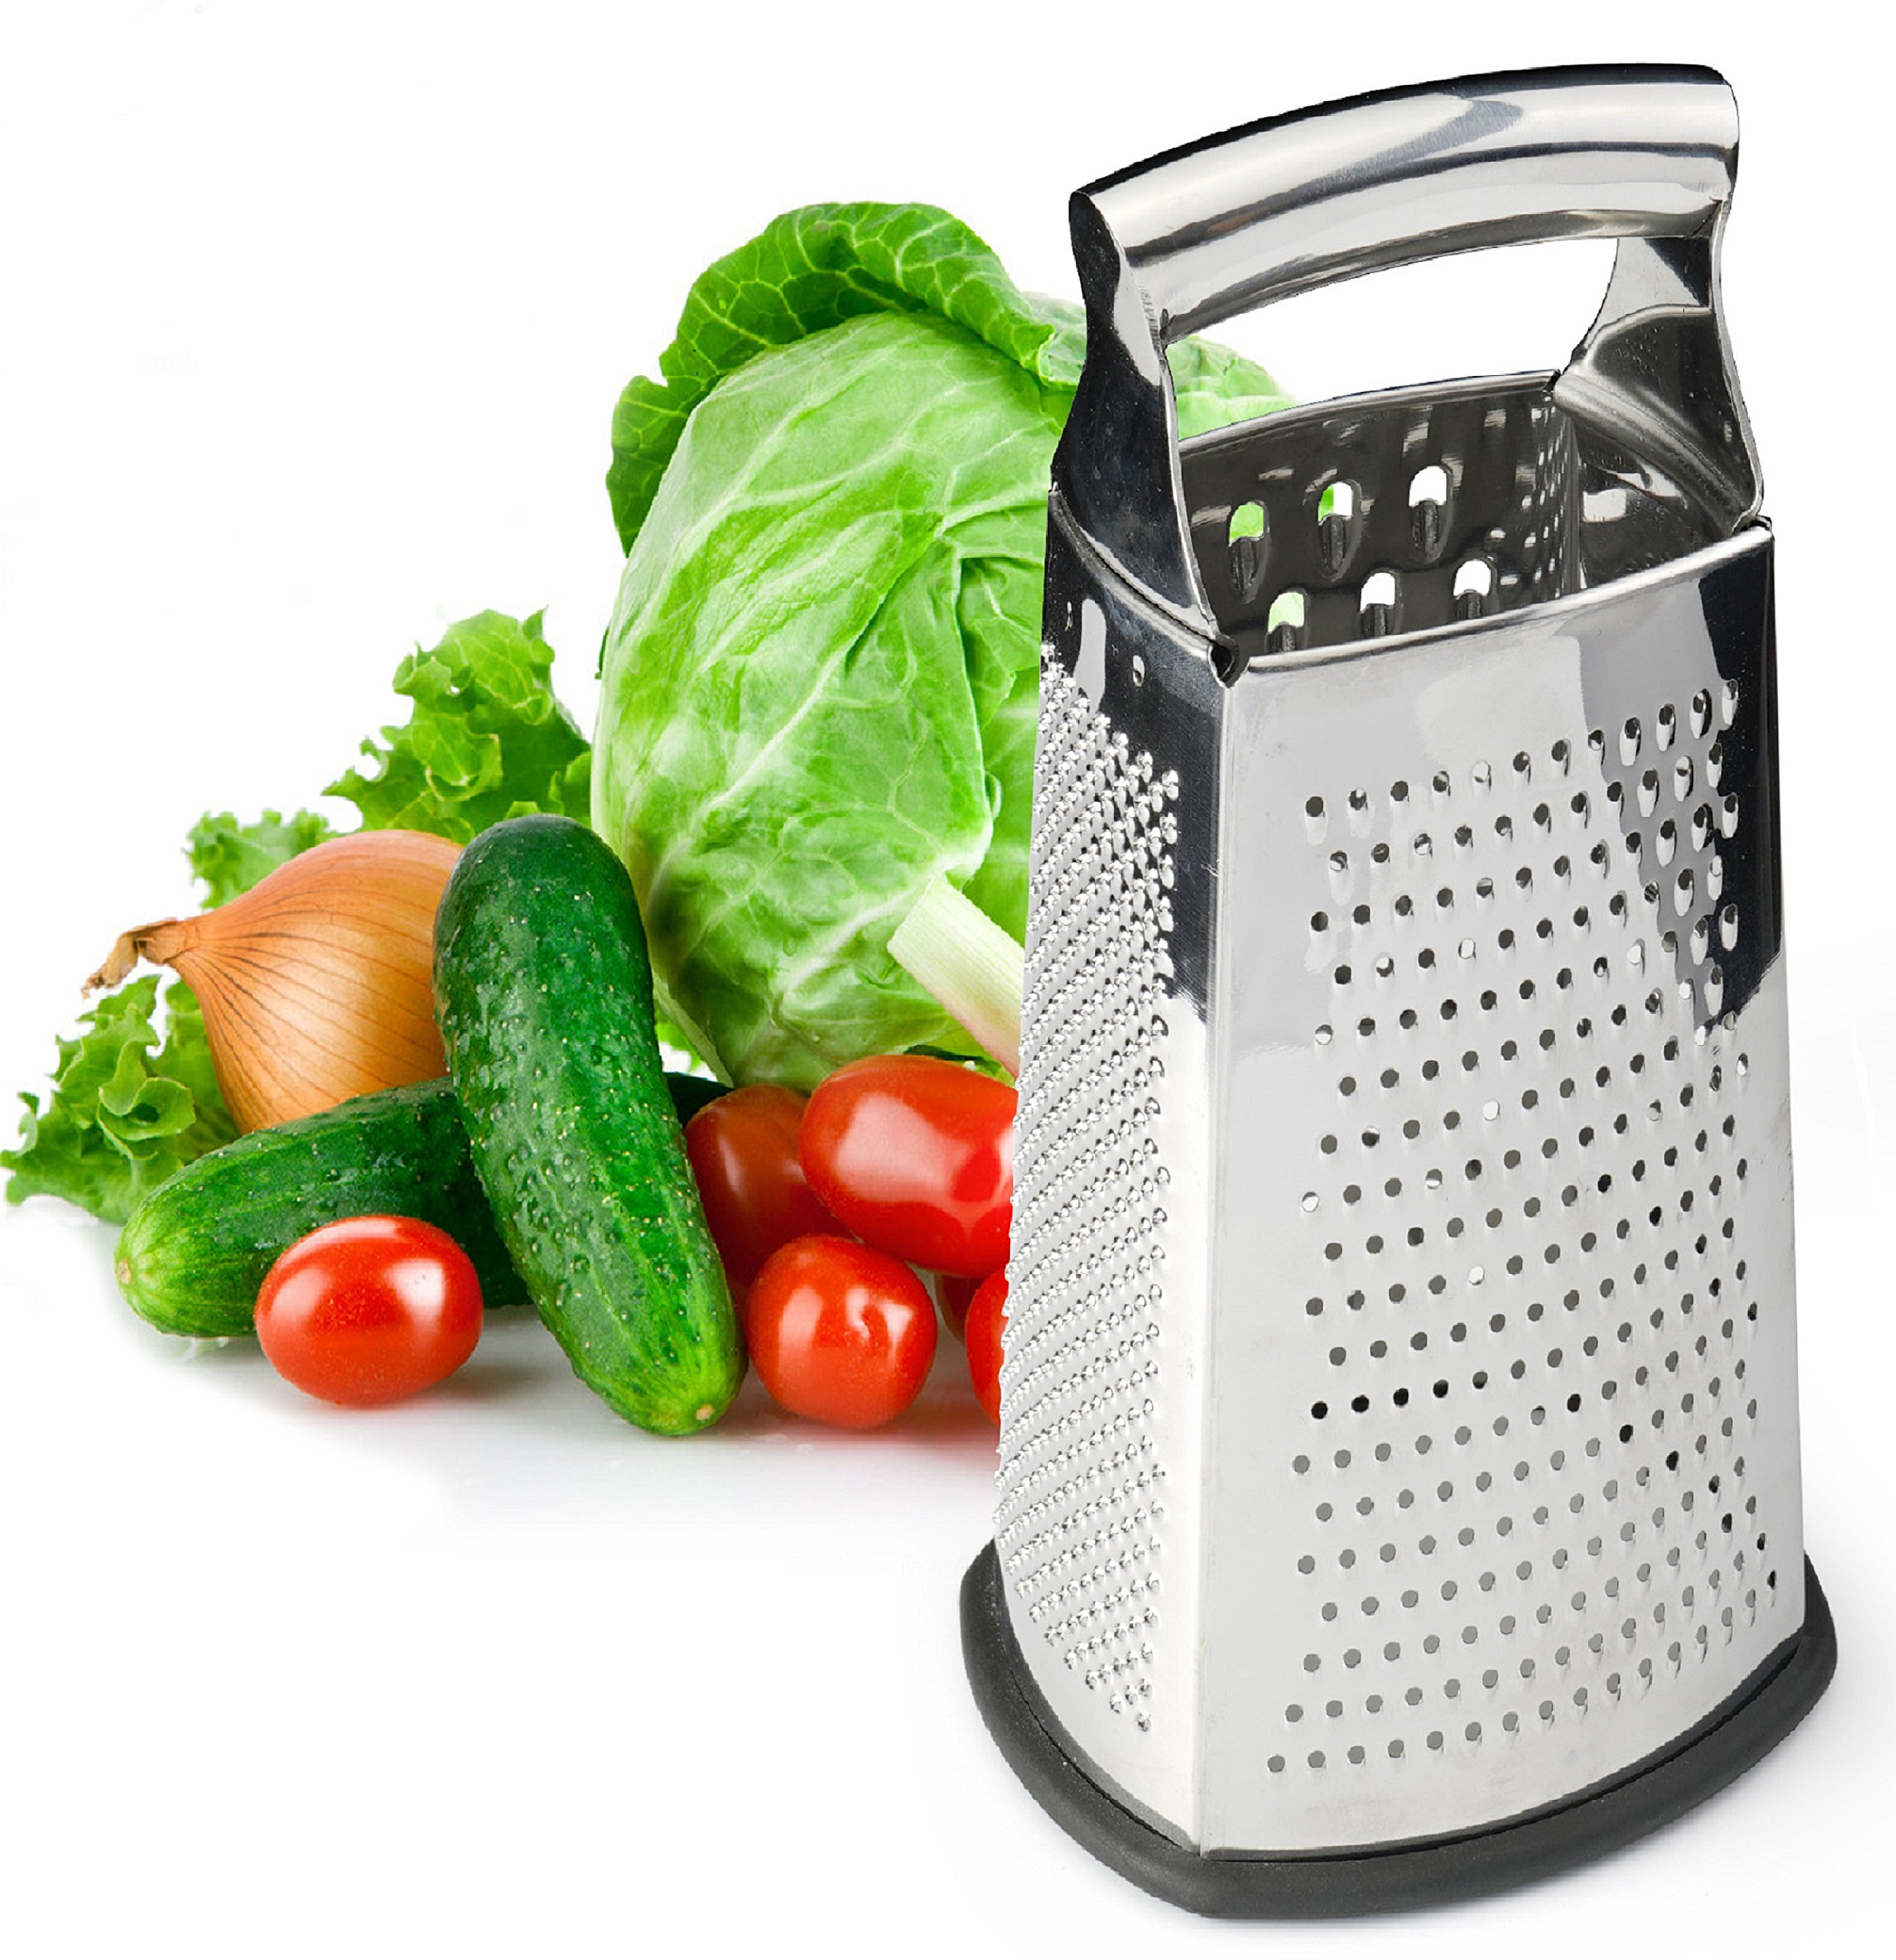 Spring Chef Box Grater, 4-Sided Stainless Steel Large 10-inch Grater for Parmesan Cheese, Ginger, Vegetables by Spring Chef